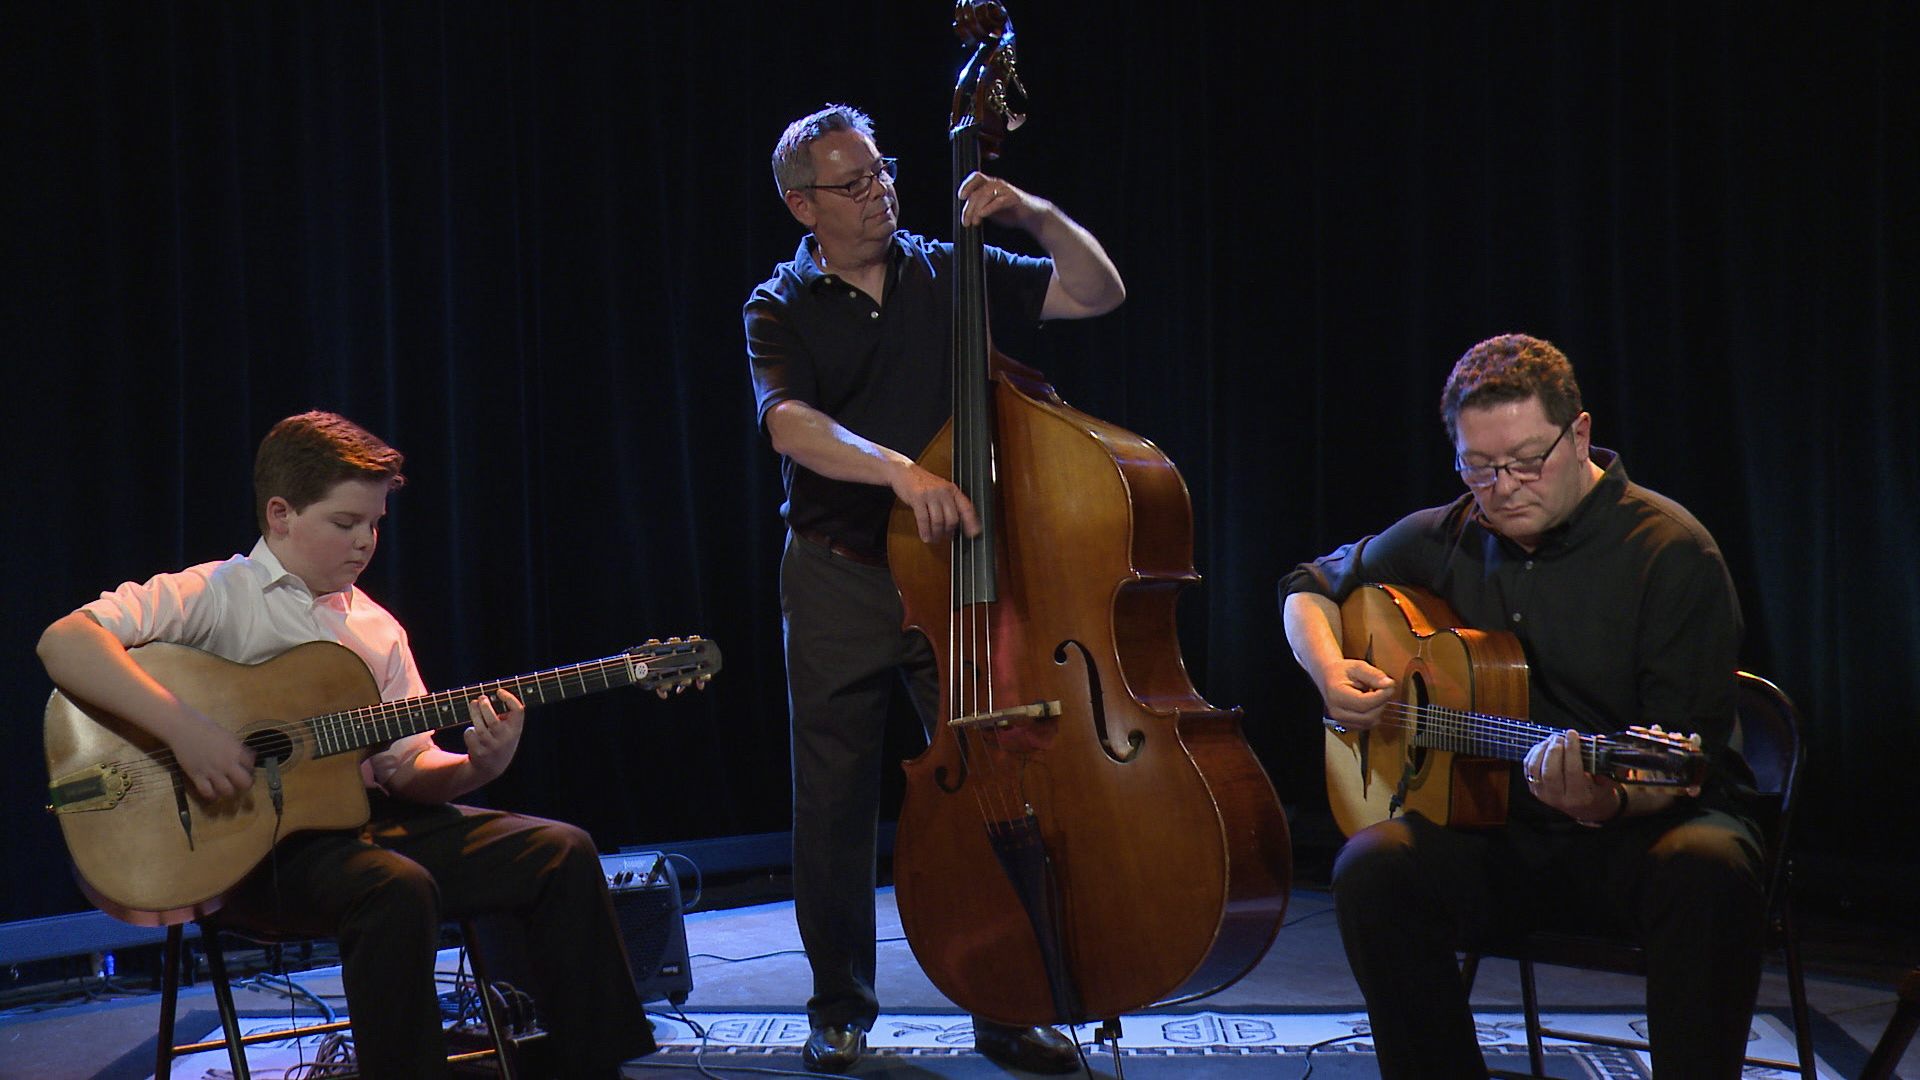 Boston Jazz Events Calendar Events Calendar Jazzboston Henry Acker Gypsy Jazz Trio At The Boston Cheese Cellar